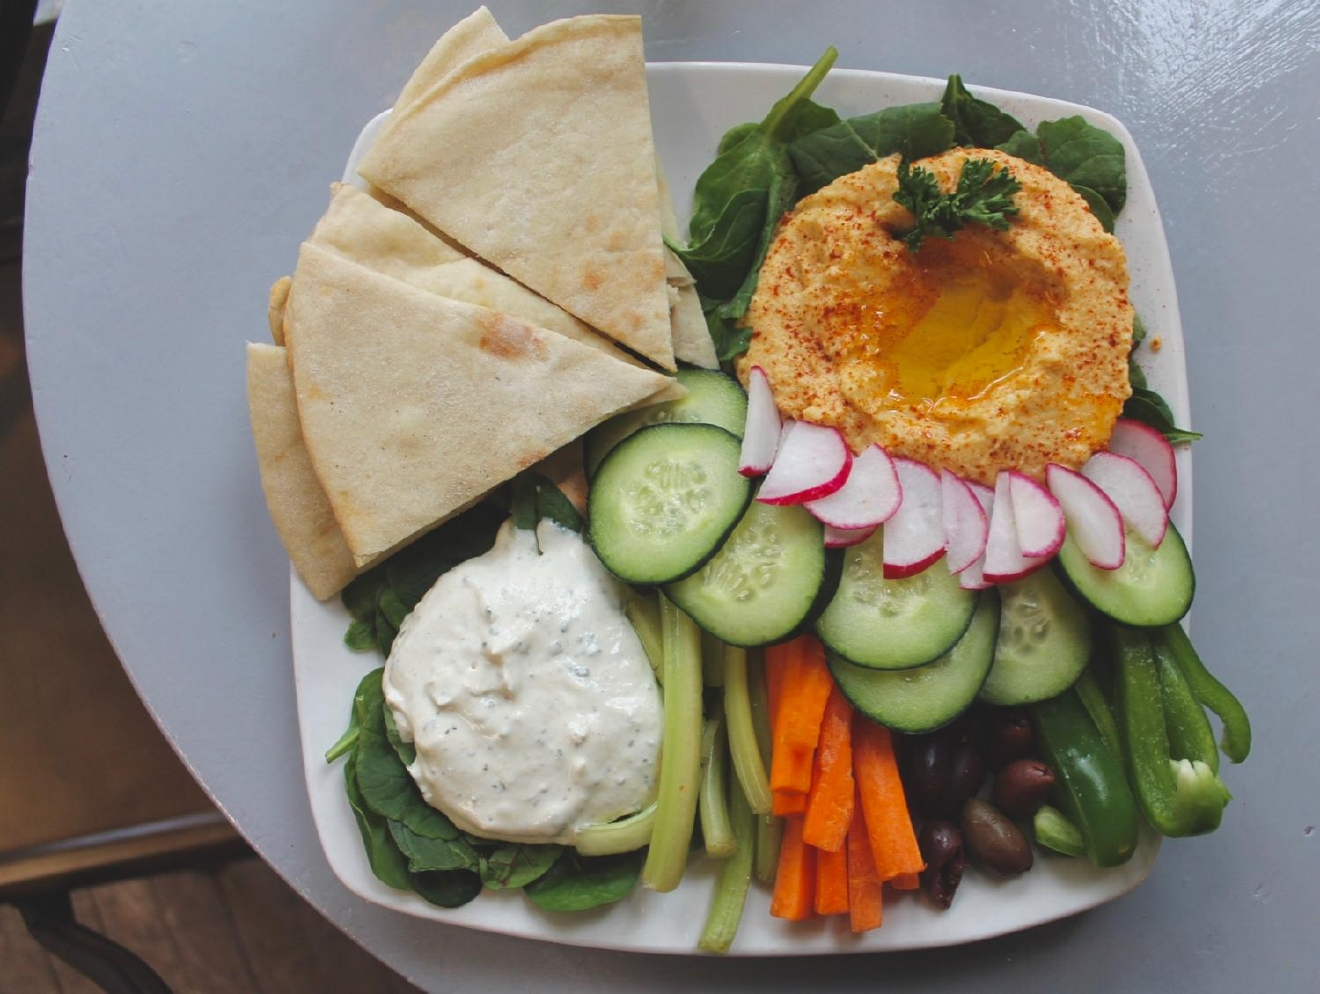 Mediterranean plate: Mama Zen's Lebanese hummus, olives, carrota, celery goat cheese pate, and house made pita / Image: Rose Brewington // Published: 3.24.17